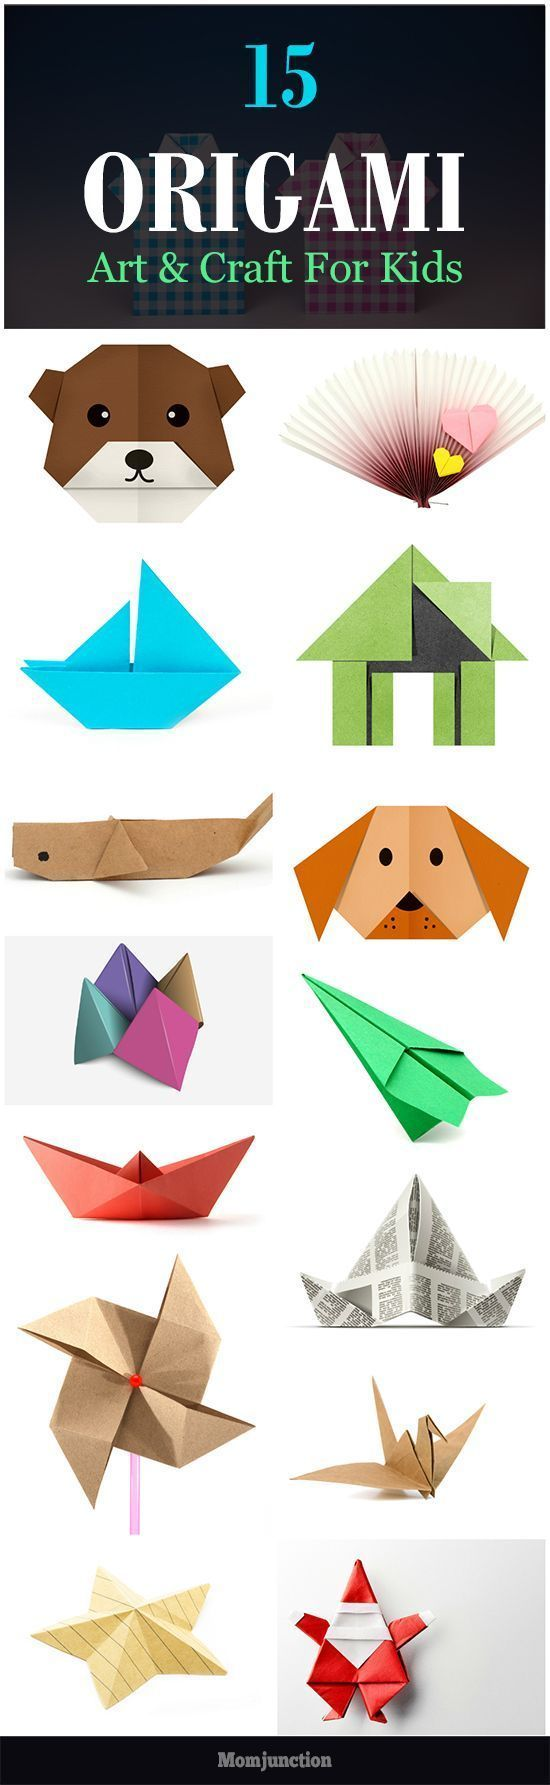 Top 15 Paper Folding Or Origami Art & Craft For Kids: Your kid can enjoy this craft activity without the extensive use of glue and scissors. Here are top 15 origami art for your little creative genius. (scheduled via http://www.tailwindapp.com?utm_source=pinterest&utm_medium=twpin&utm_content=post83290719&utm_campaign=scheduler_attribution)